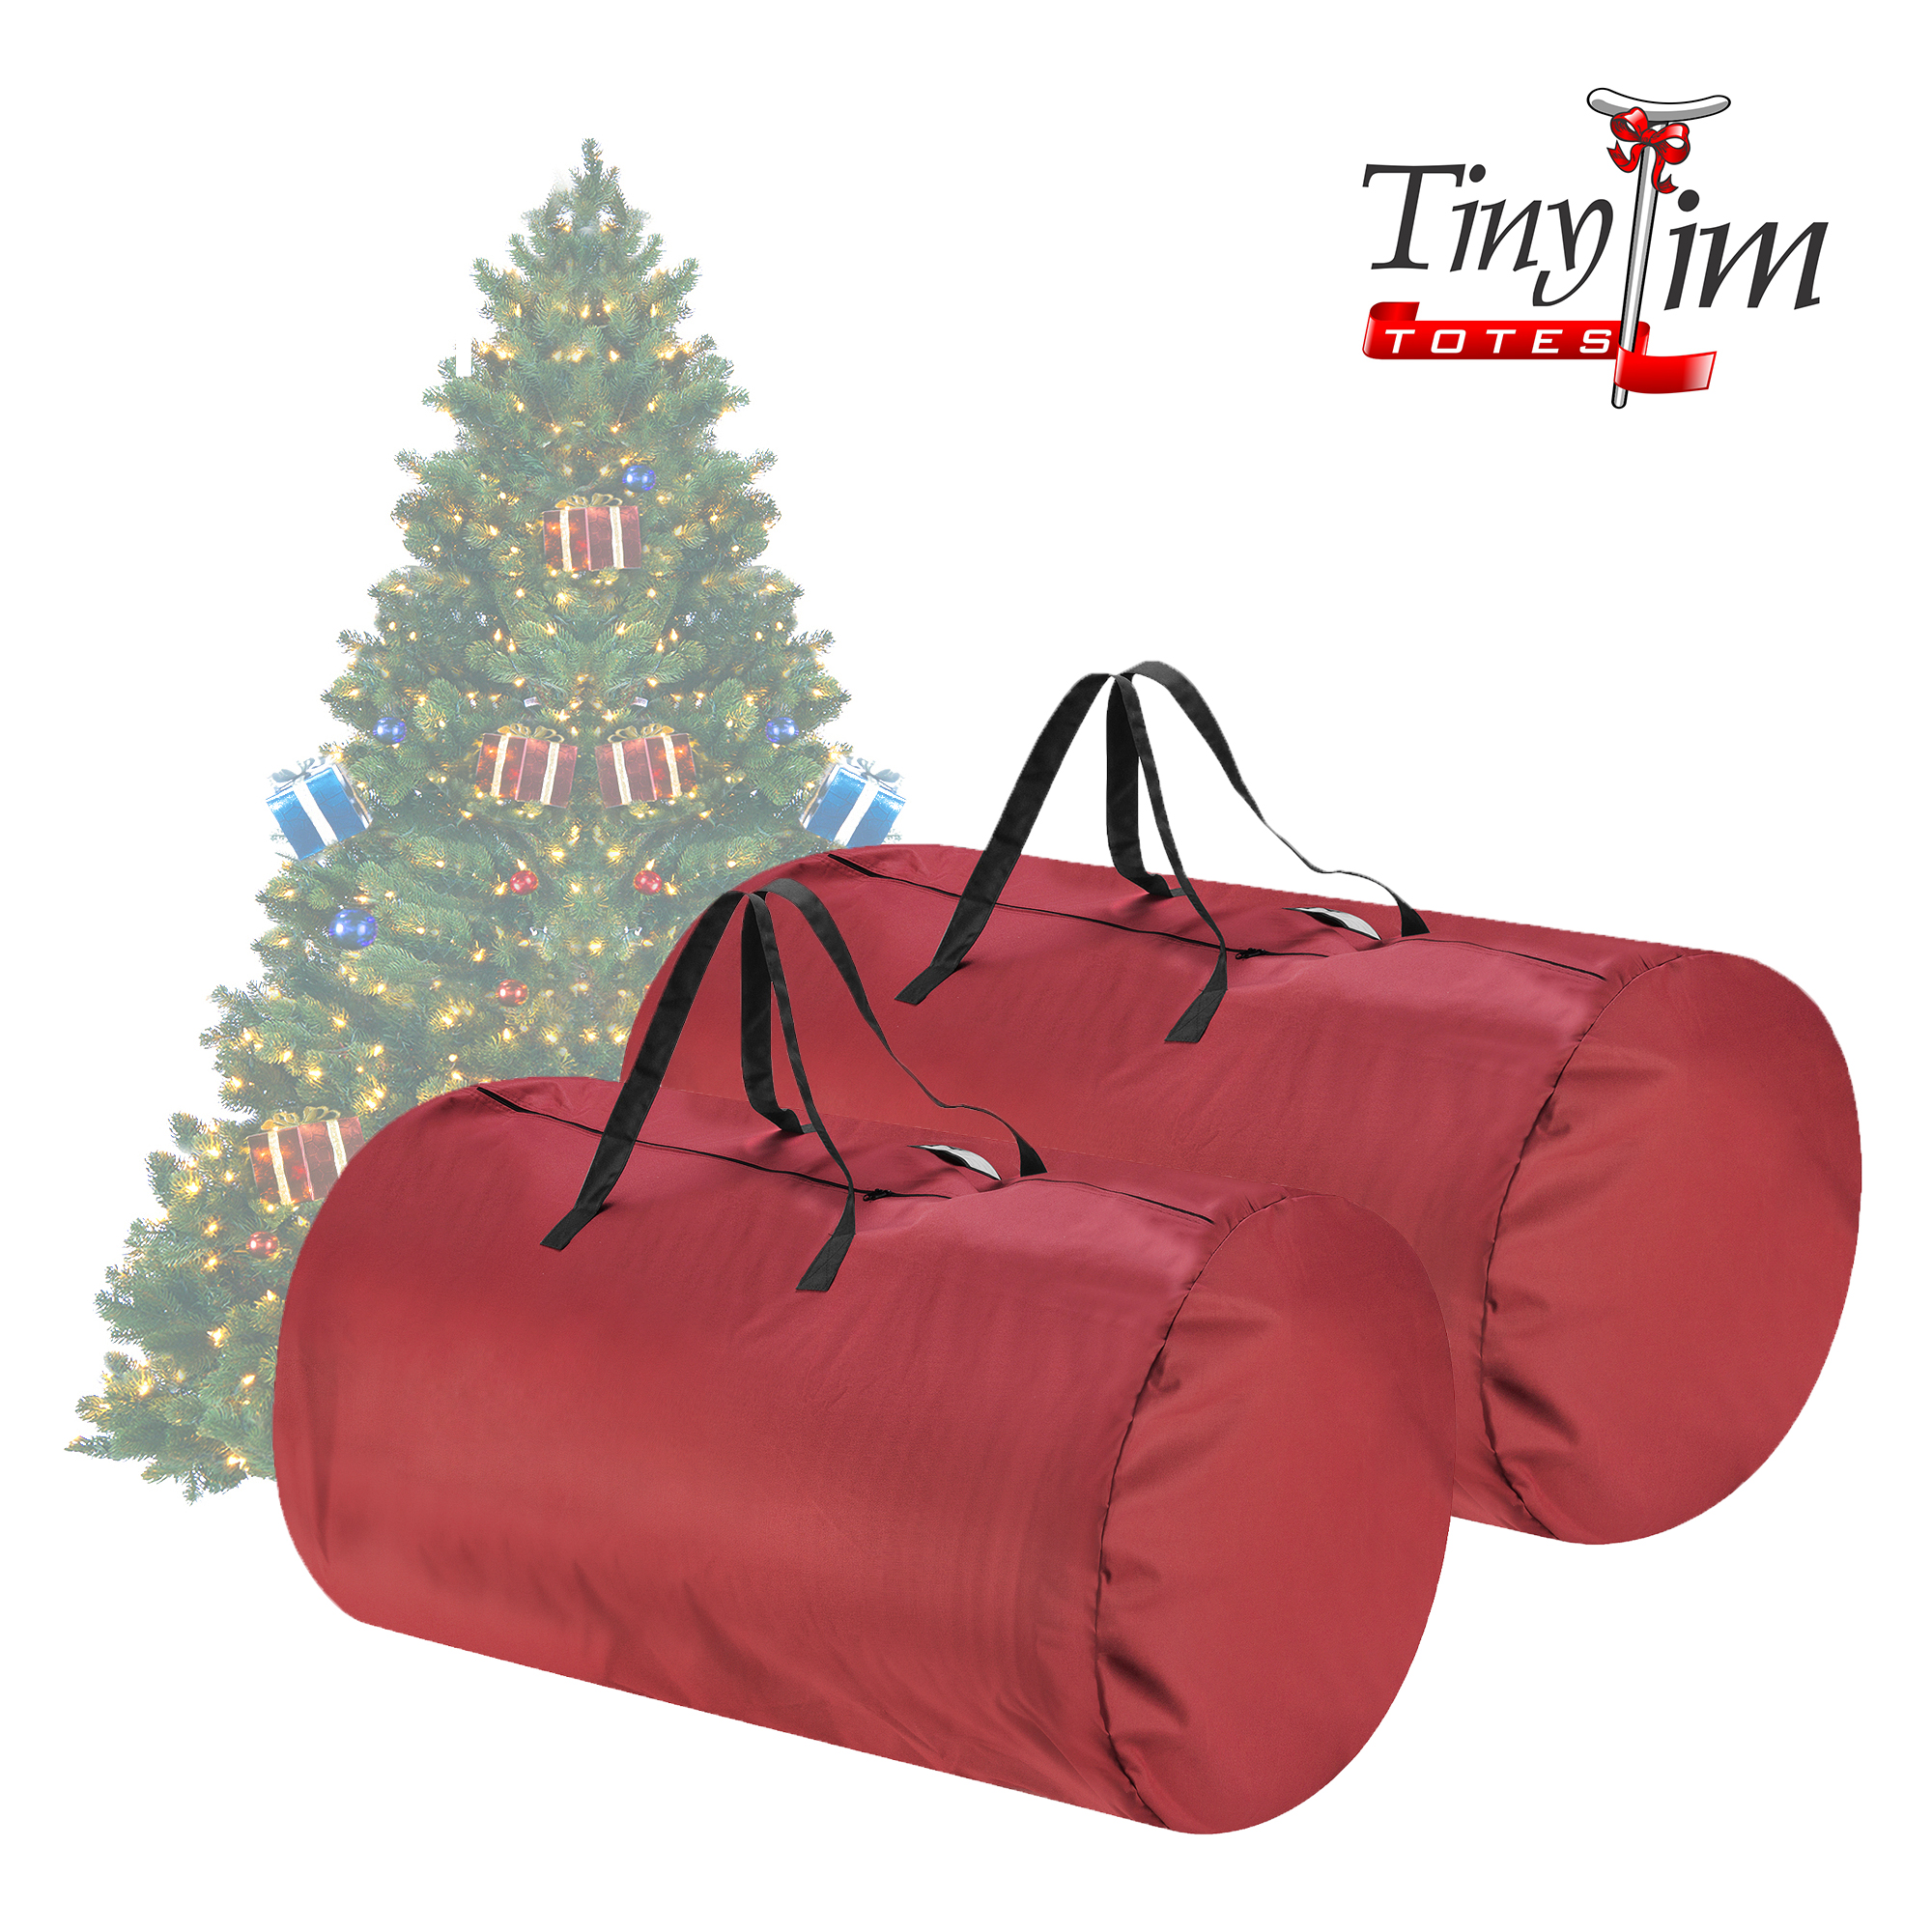 Christmas Tree Bags.Tiny Tim Totes Premium 2 Pack Canvas Christmas Tree Storage Bags Extra Large For 9 Foot And 7 5 Foot Trees Red